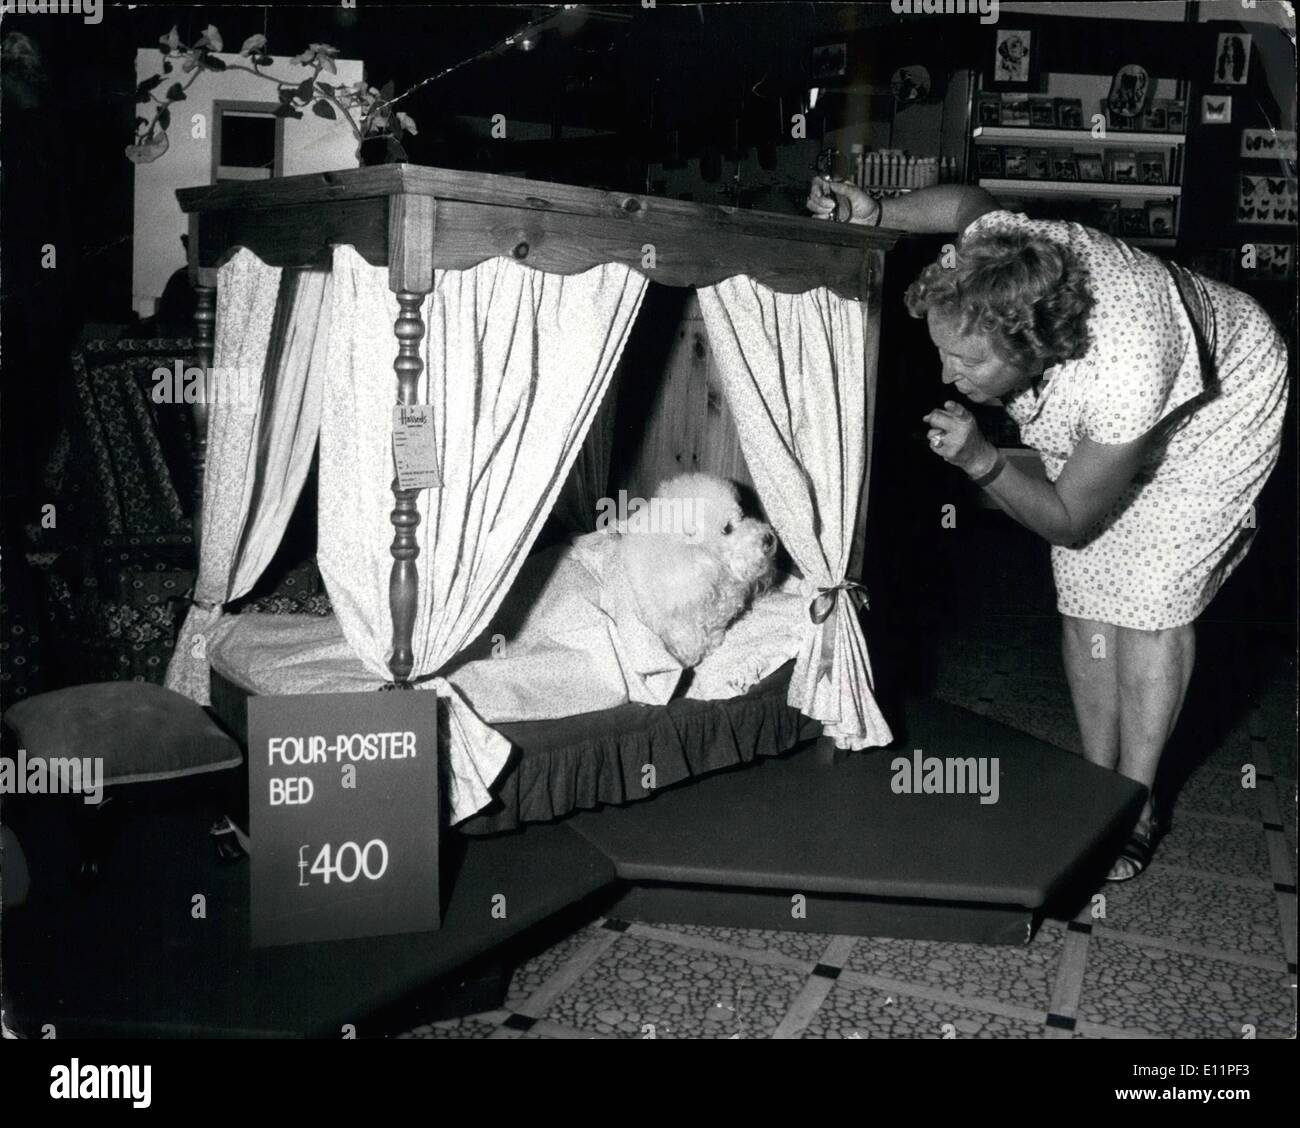 Aug. 08, 1979 - £400 Four-poster for pet dog: A dog's life is just a dream for ''Canto'' a prize Bichon Frise, when its owner Mrs. Pauline Block of Whitchurch, Hants, called in at Harrods Pet department to see if her pet dog would feel happy with such a special four-poster bed at £400, Canto did and make himself at home, so now he can sleep in luxury. Photo shows Mrs. Pauline Block looks on as her prize Bichon Frise dog 'Canto' makes himself at home on his new bed. - Stock Image